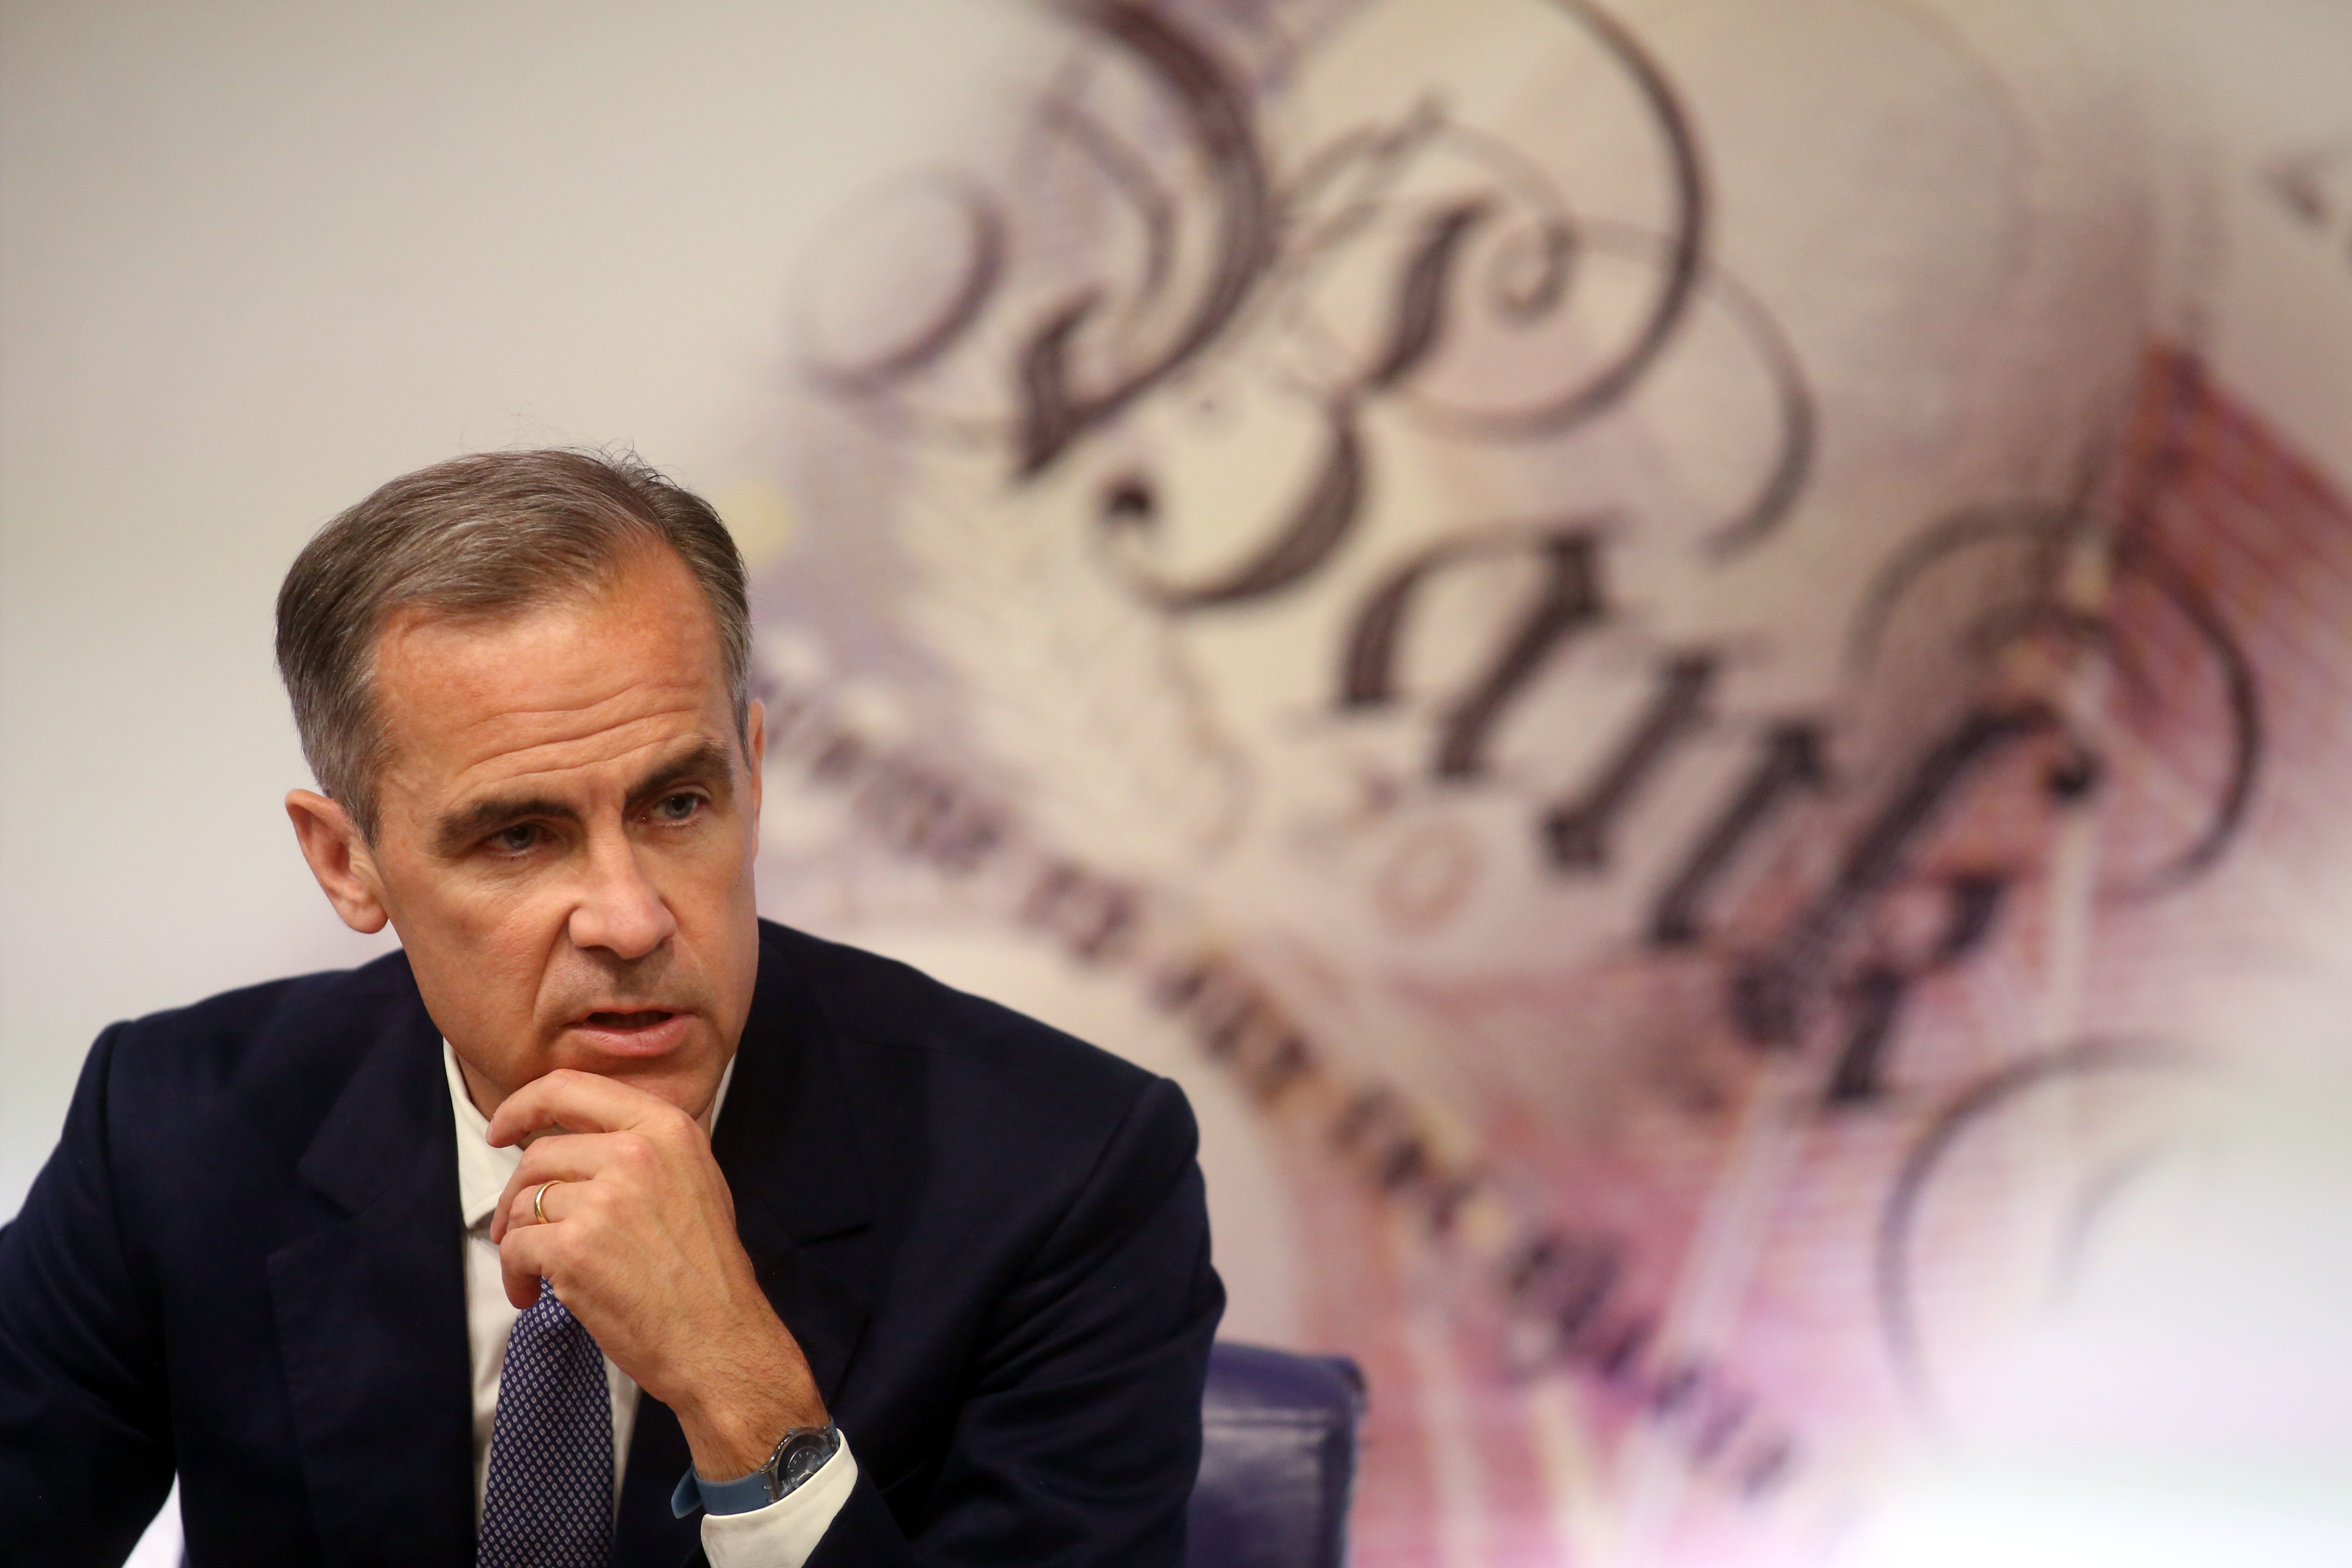 Bank of England Governor Mark Carney Delivers A News Conference On The Bank's Financial Stability Report